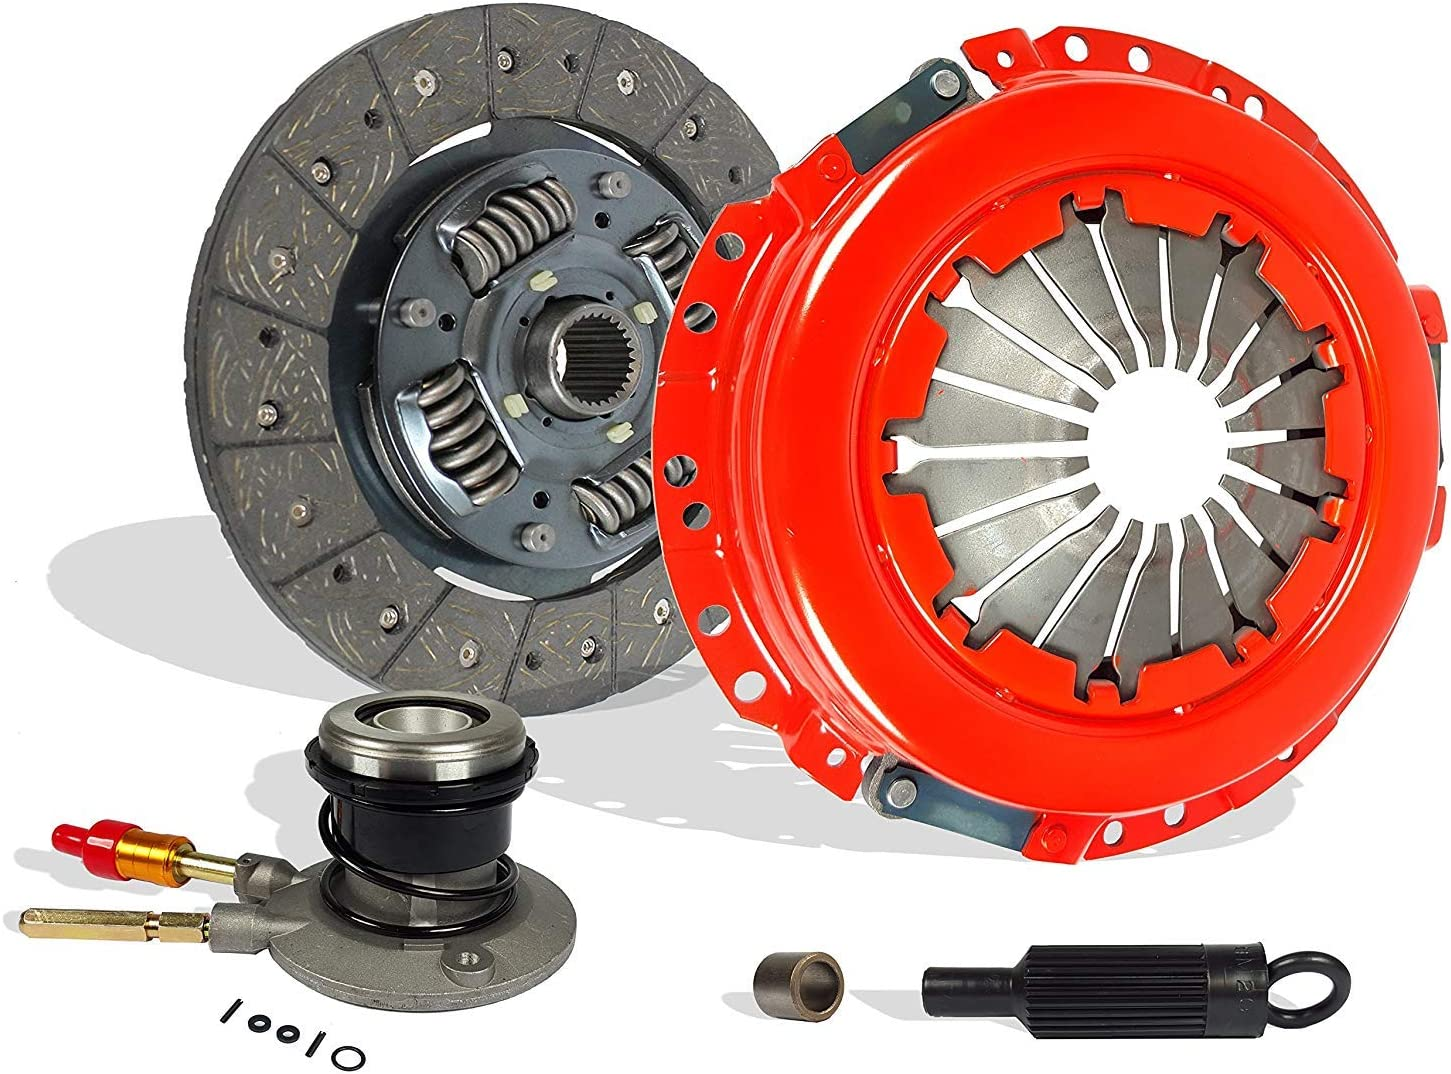 Clutch Kit And Slave Works With Gmc Sonoma Isuzu Base Chevy S10 Ls Sl Sls Sle Xs 1996-2001 2.2L l4 GAS OHV Clutch Disc Stage 1